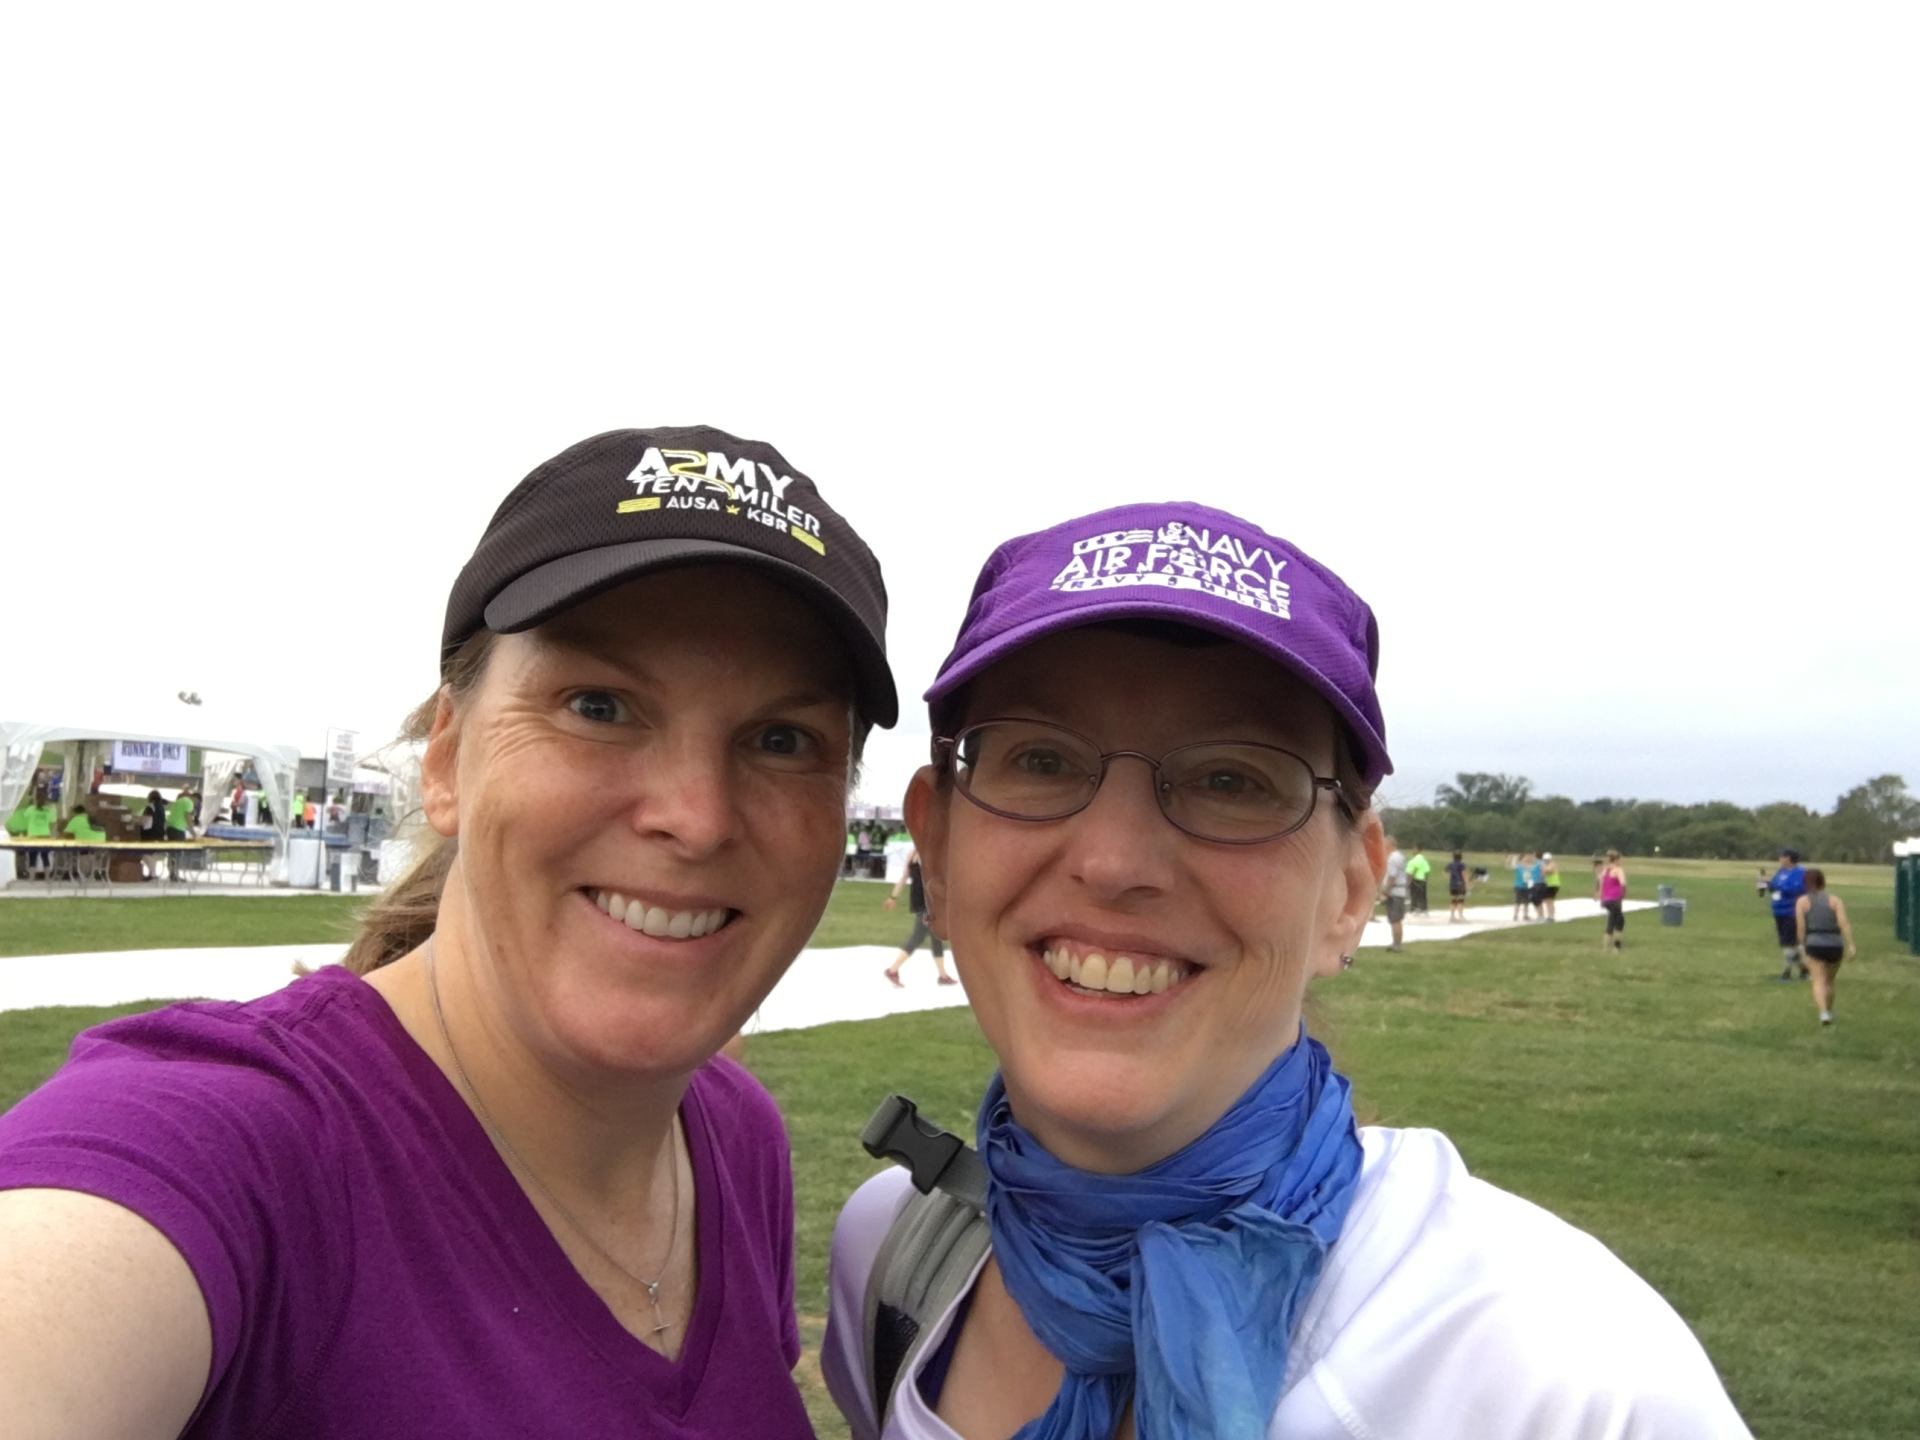 With Leslie before the race.